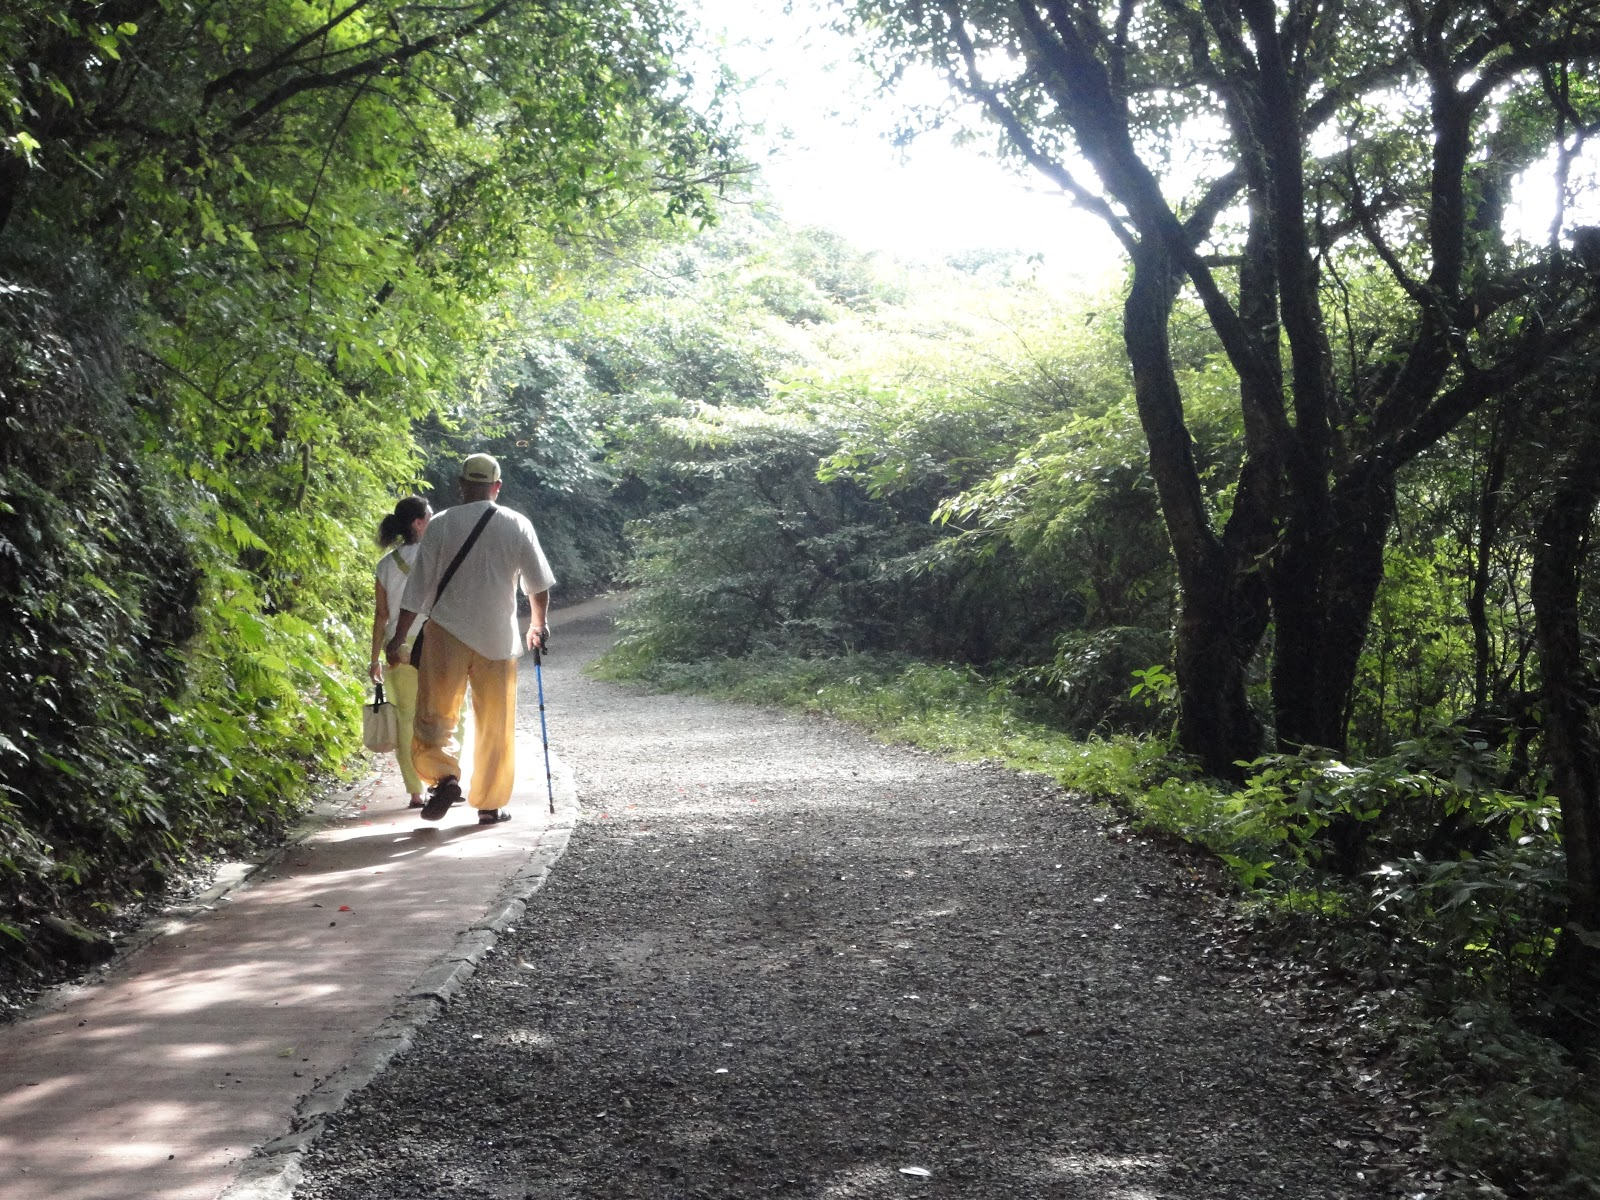 photo essay yangmingshan my favorite escape from the city the the trail to erzihping in yangmingshan national park taiwan